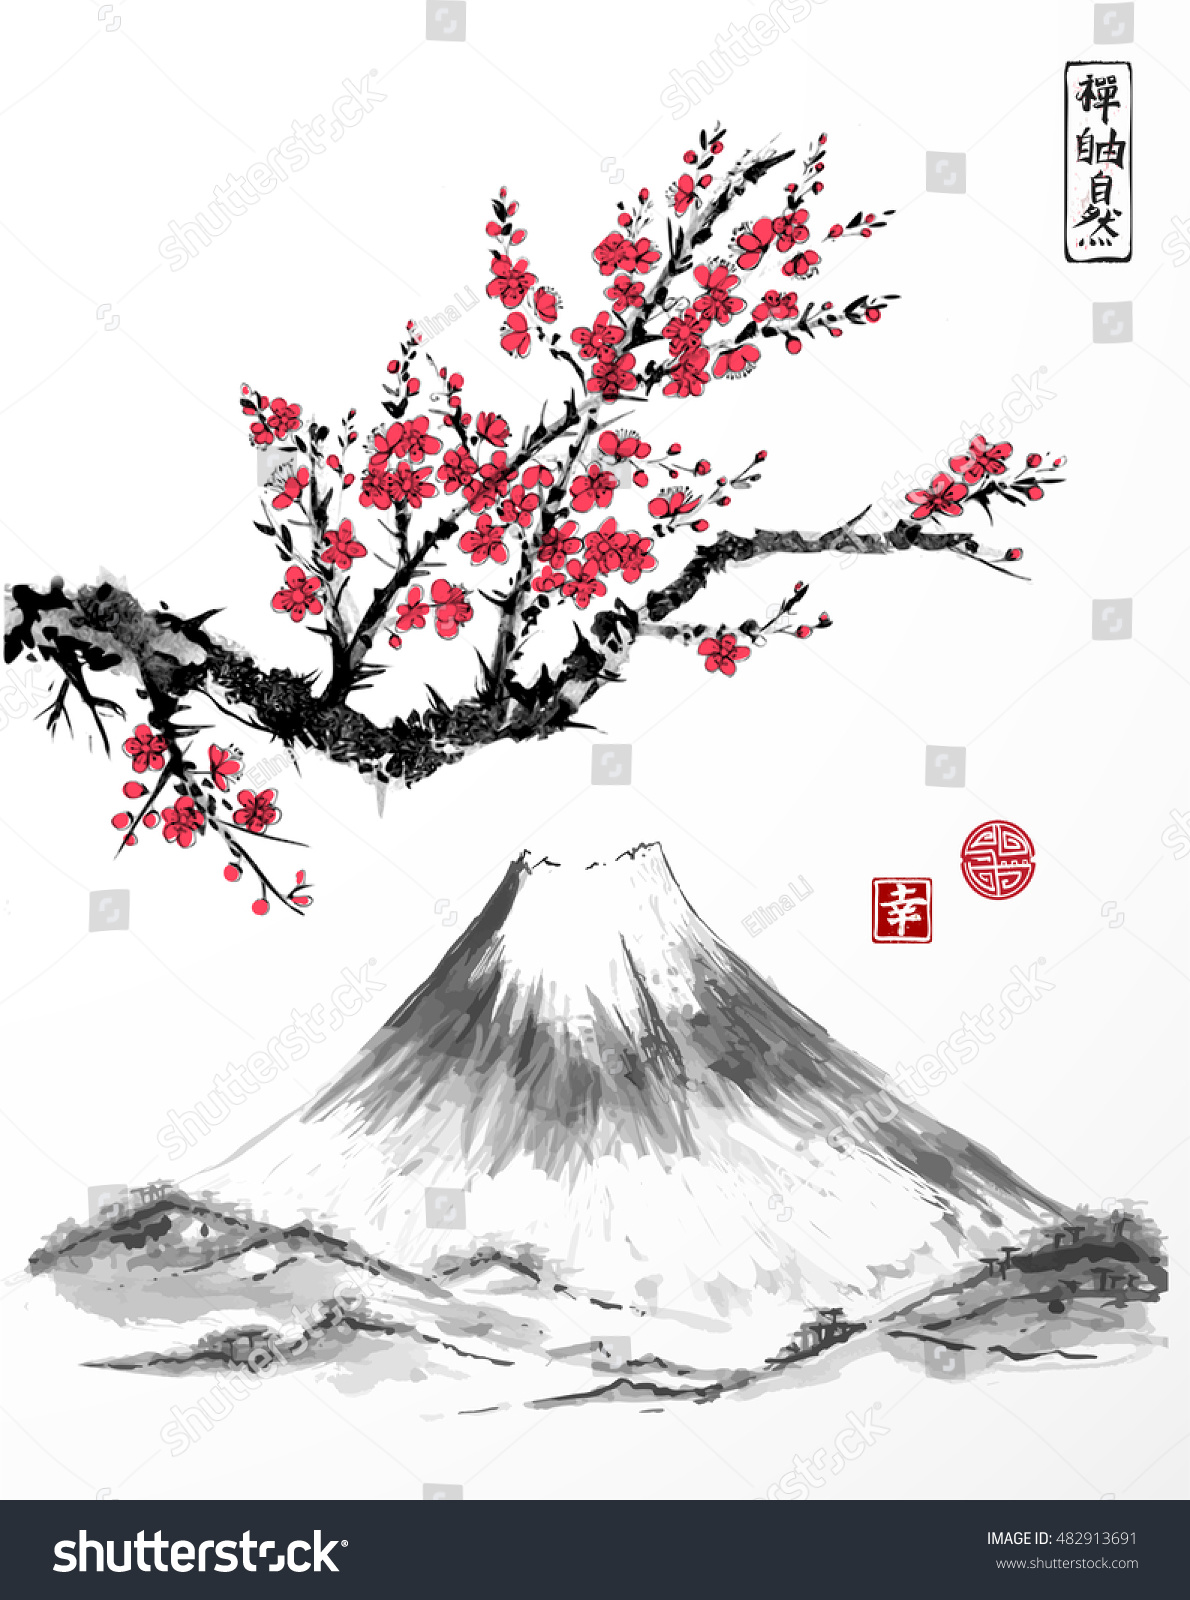 Oriental sakura cherry tree in blossom and Fujiyama mountain on white background Contains hieroglyphs zen freedom nature happiness Traditional Japanese ink painting sumi-e